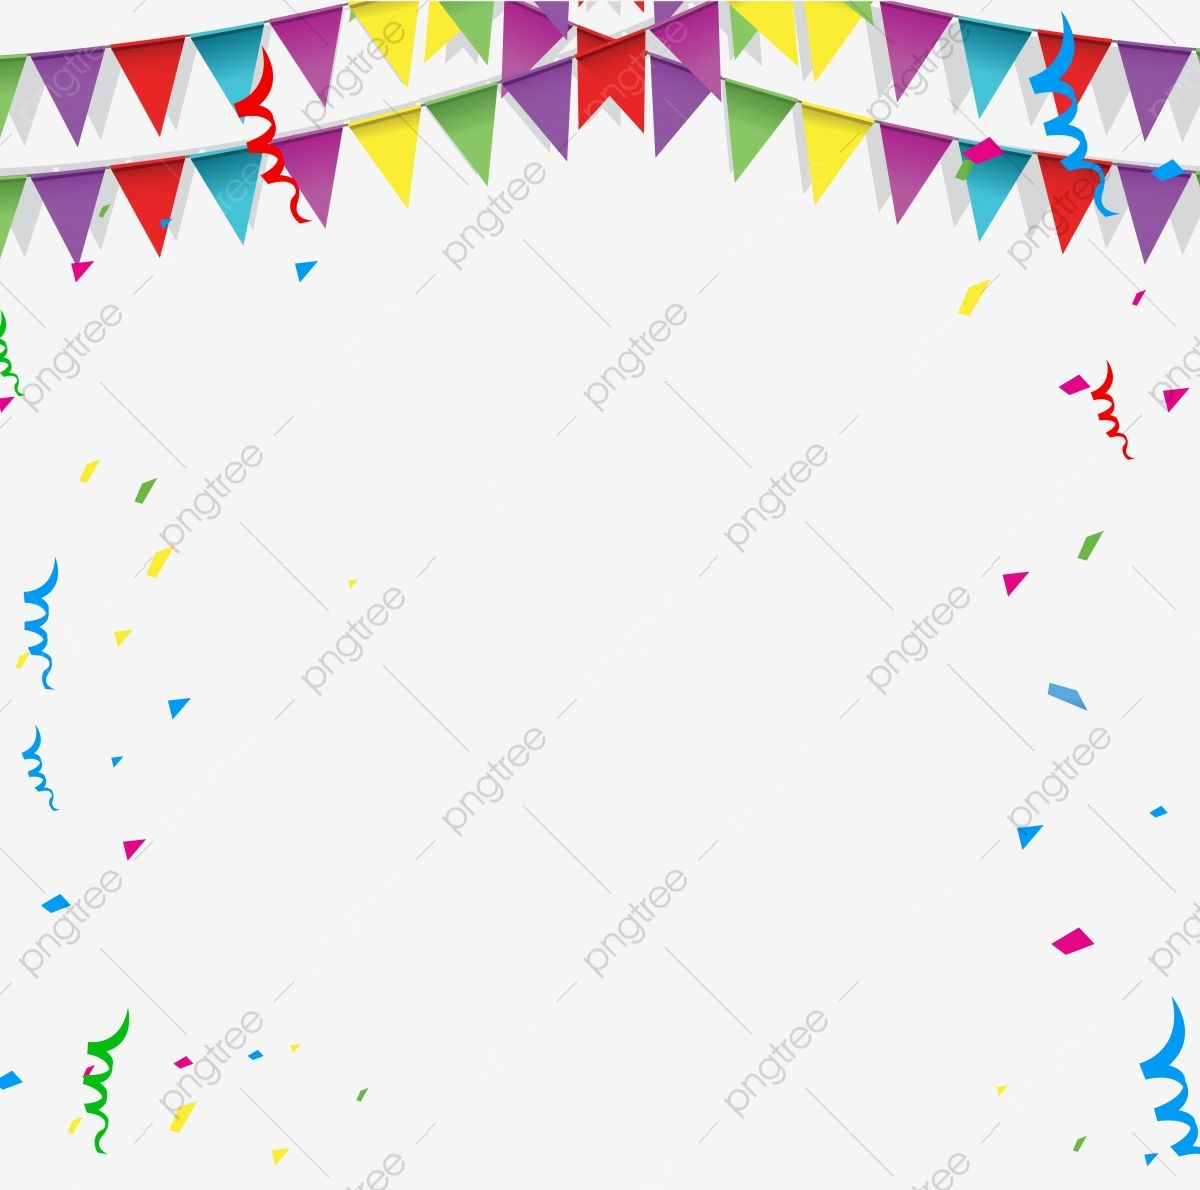 Happy Birthday Border Png Transparent Background Transparent Clipart Confetti Vector Png And Vector With Transparent Background For Free Download Happy Birthday Font Transparent Background Happy Birthday Floral